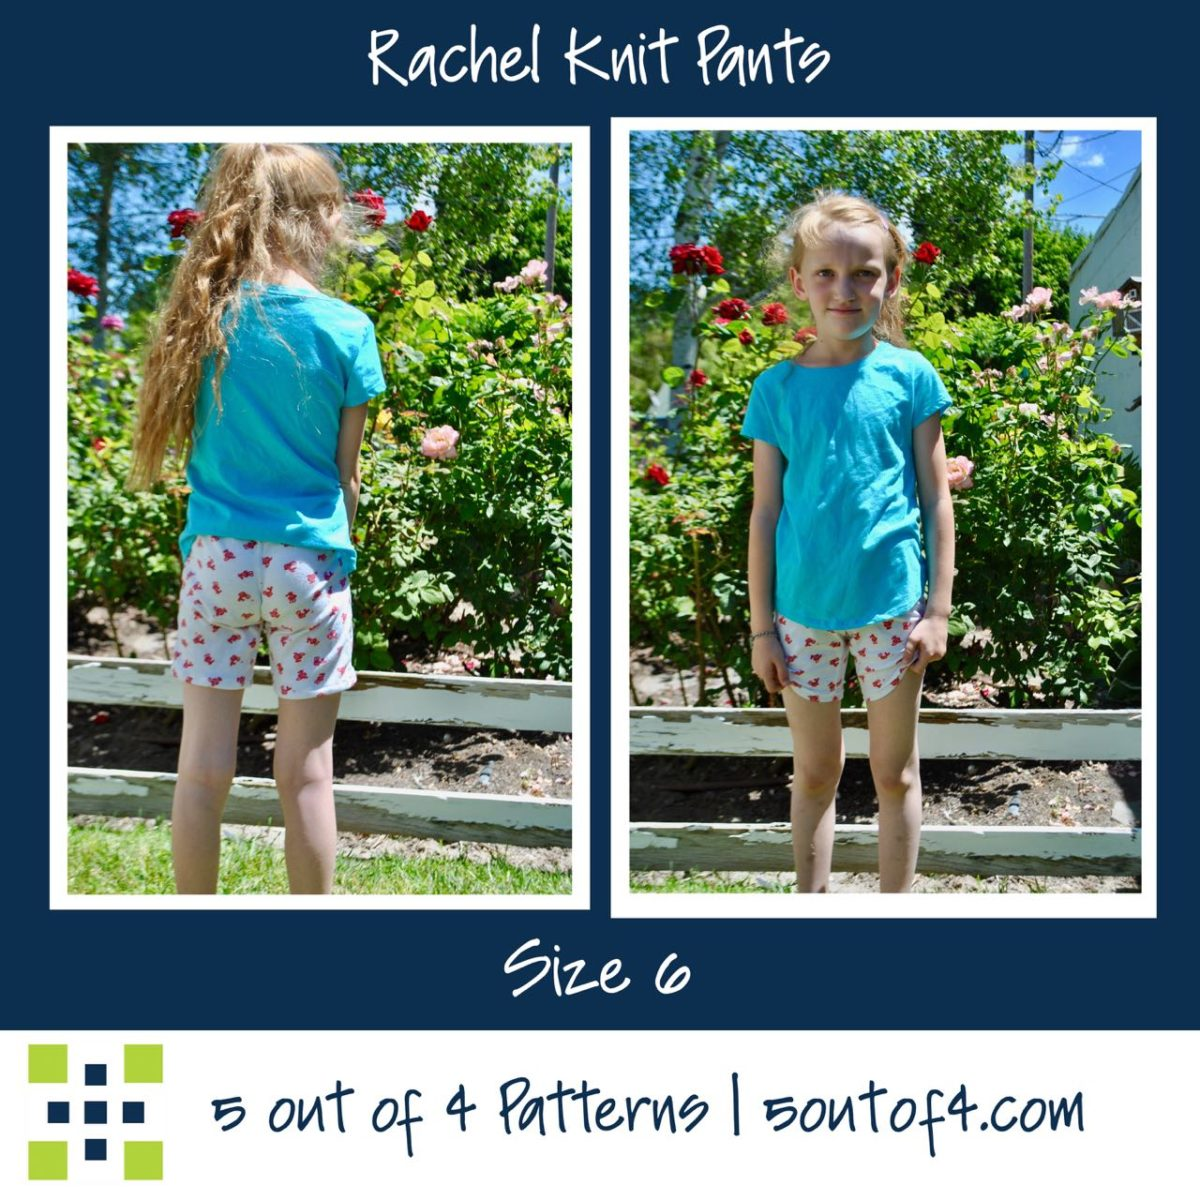 Rachel 5oo4 Knit pants size 6 shorts (1)